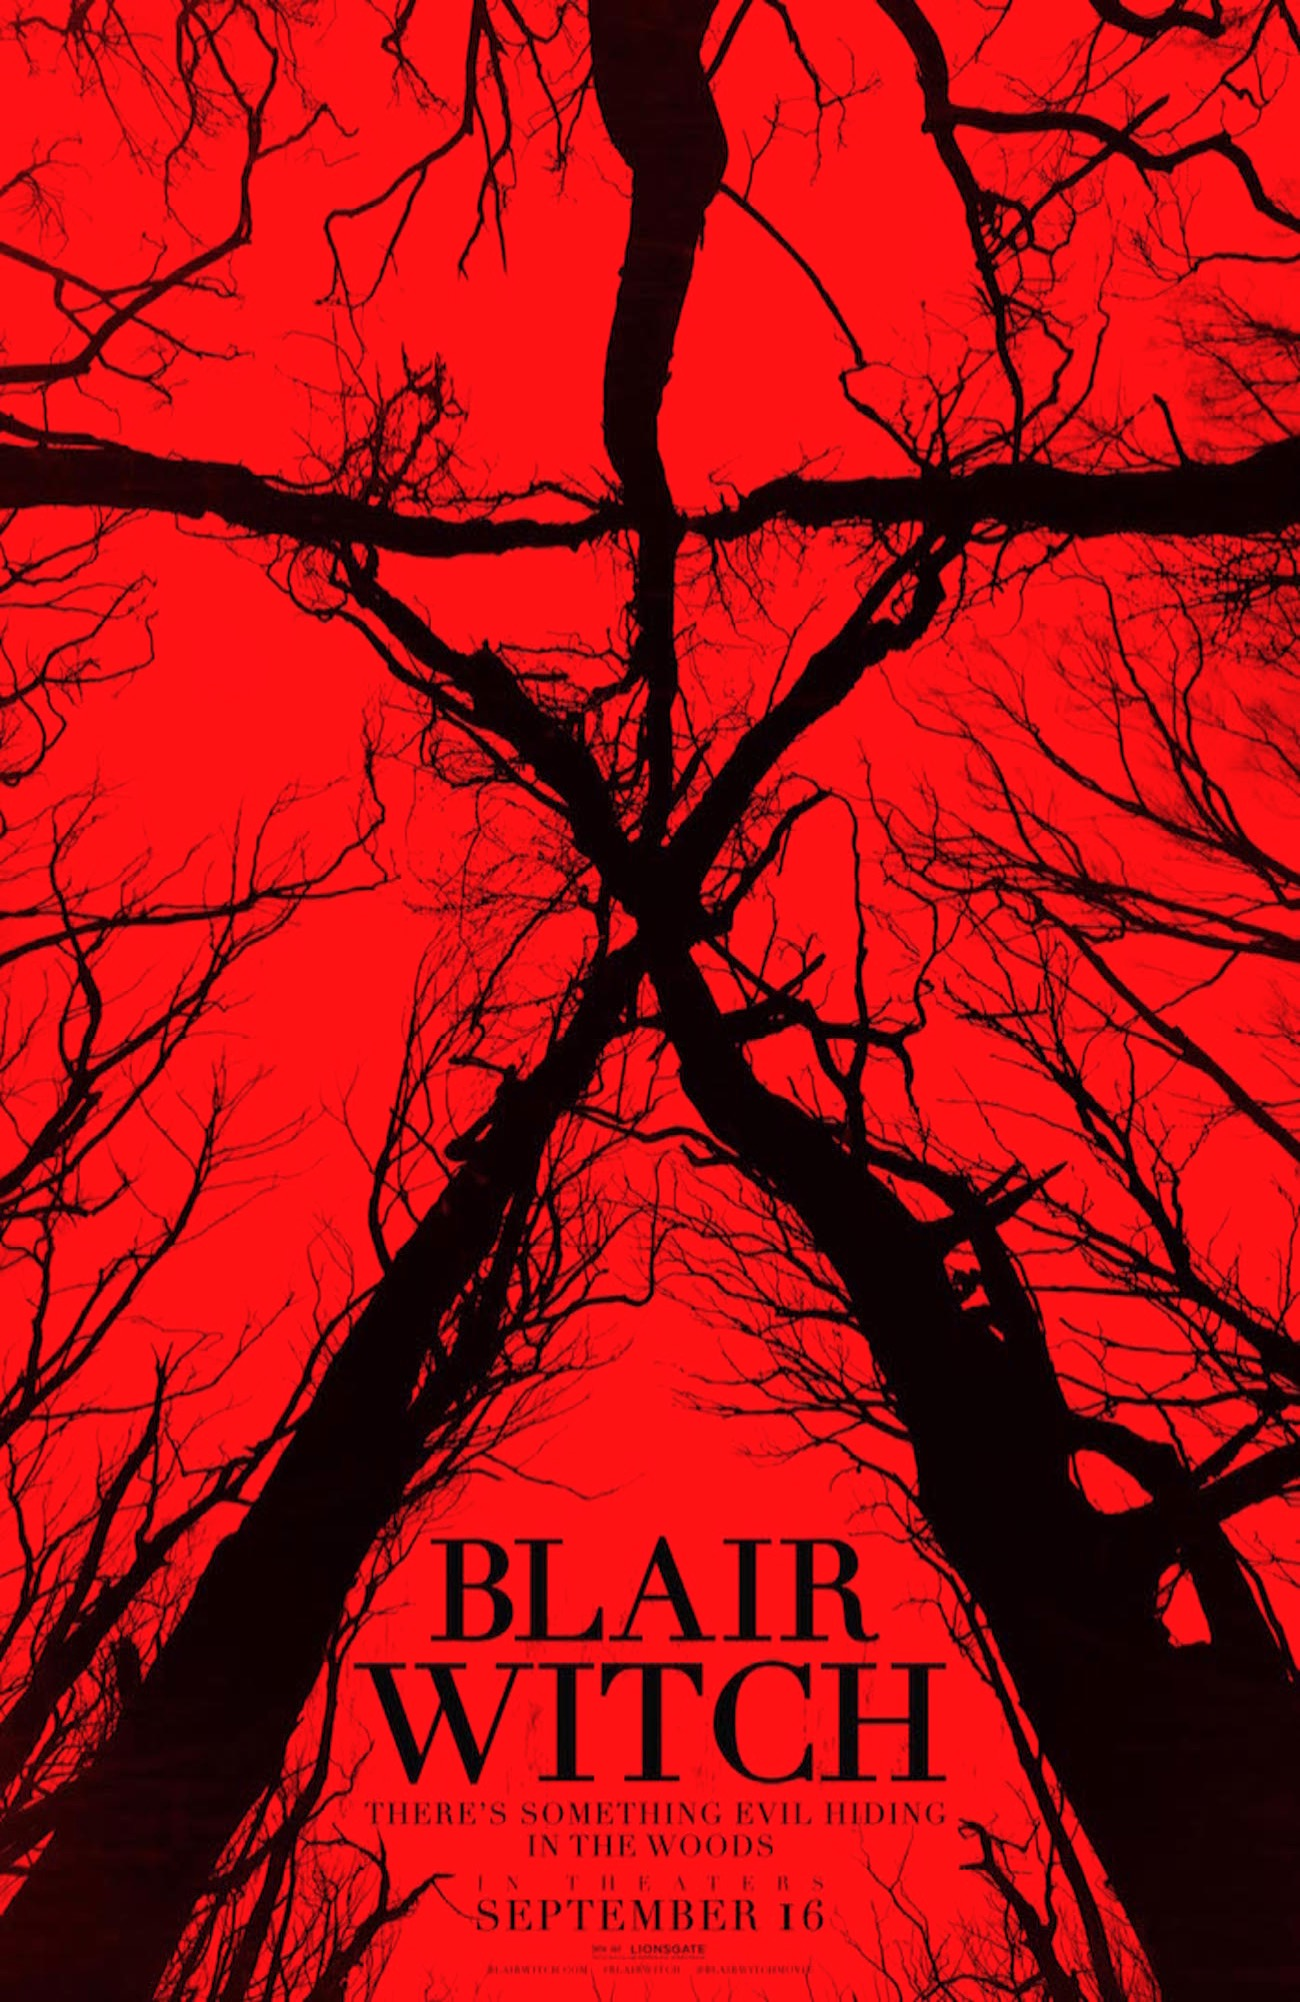 Blair witch the woods poster 2